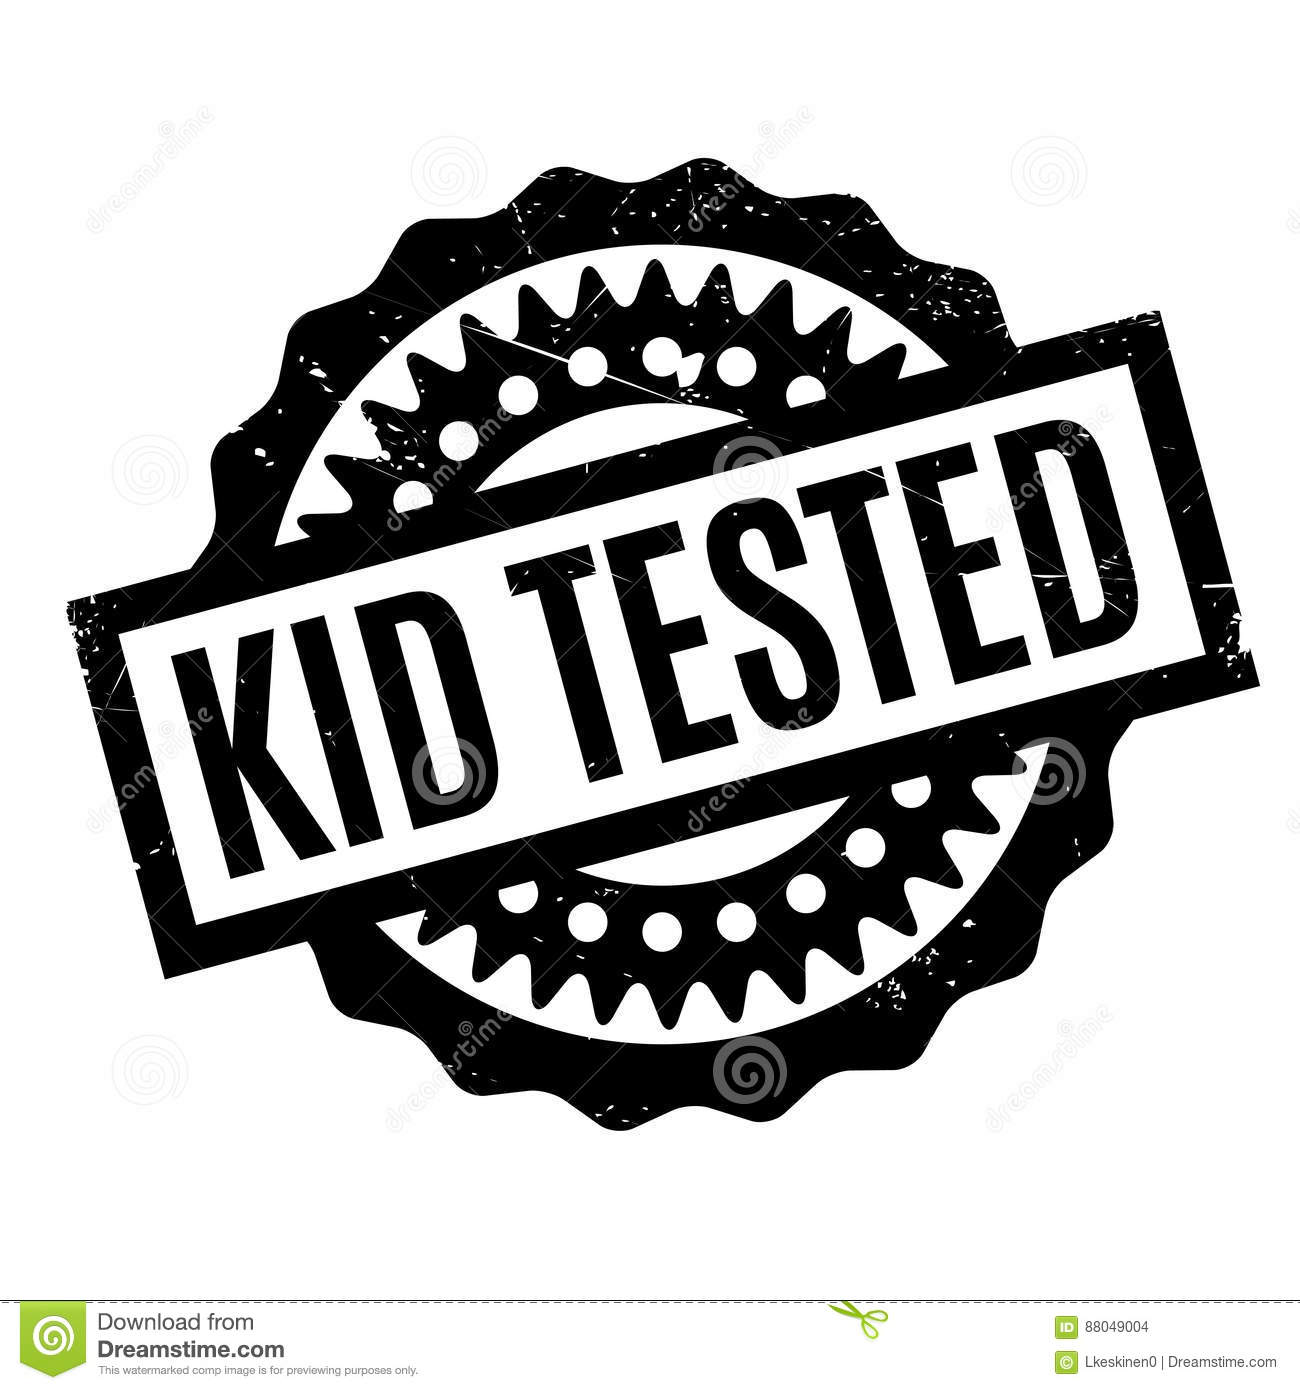 Kid Tested Rubber Stamp